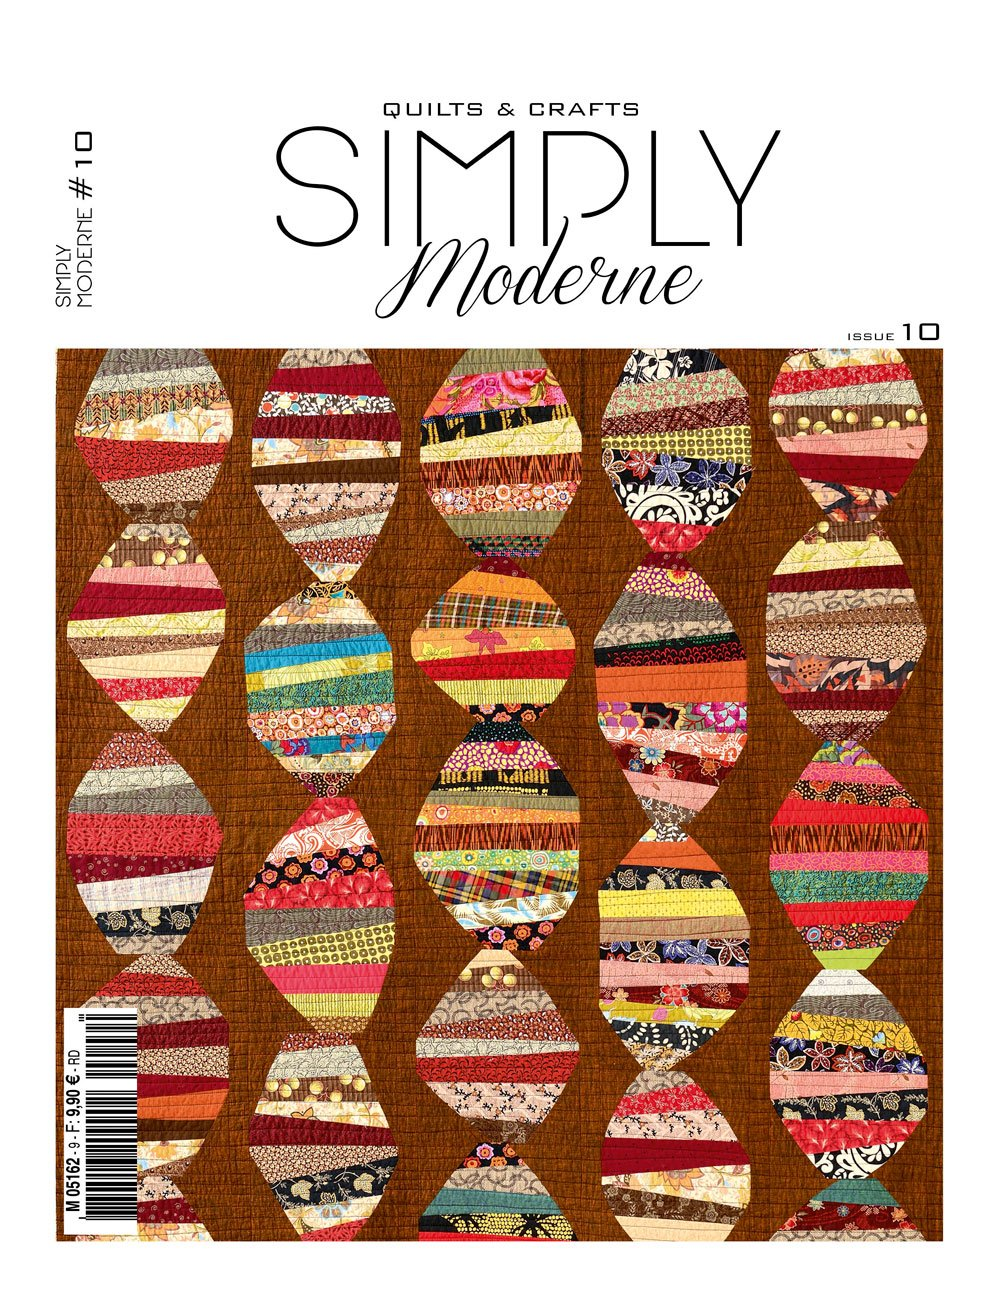 Simply Moderne magazine Issue No. 10